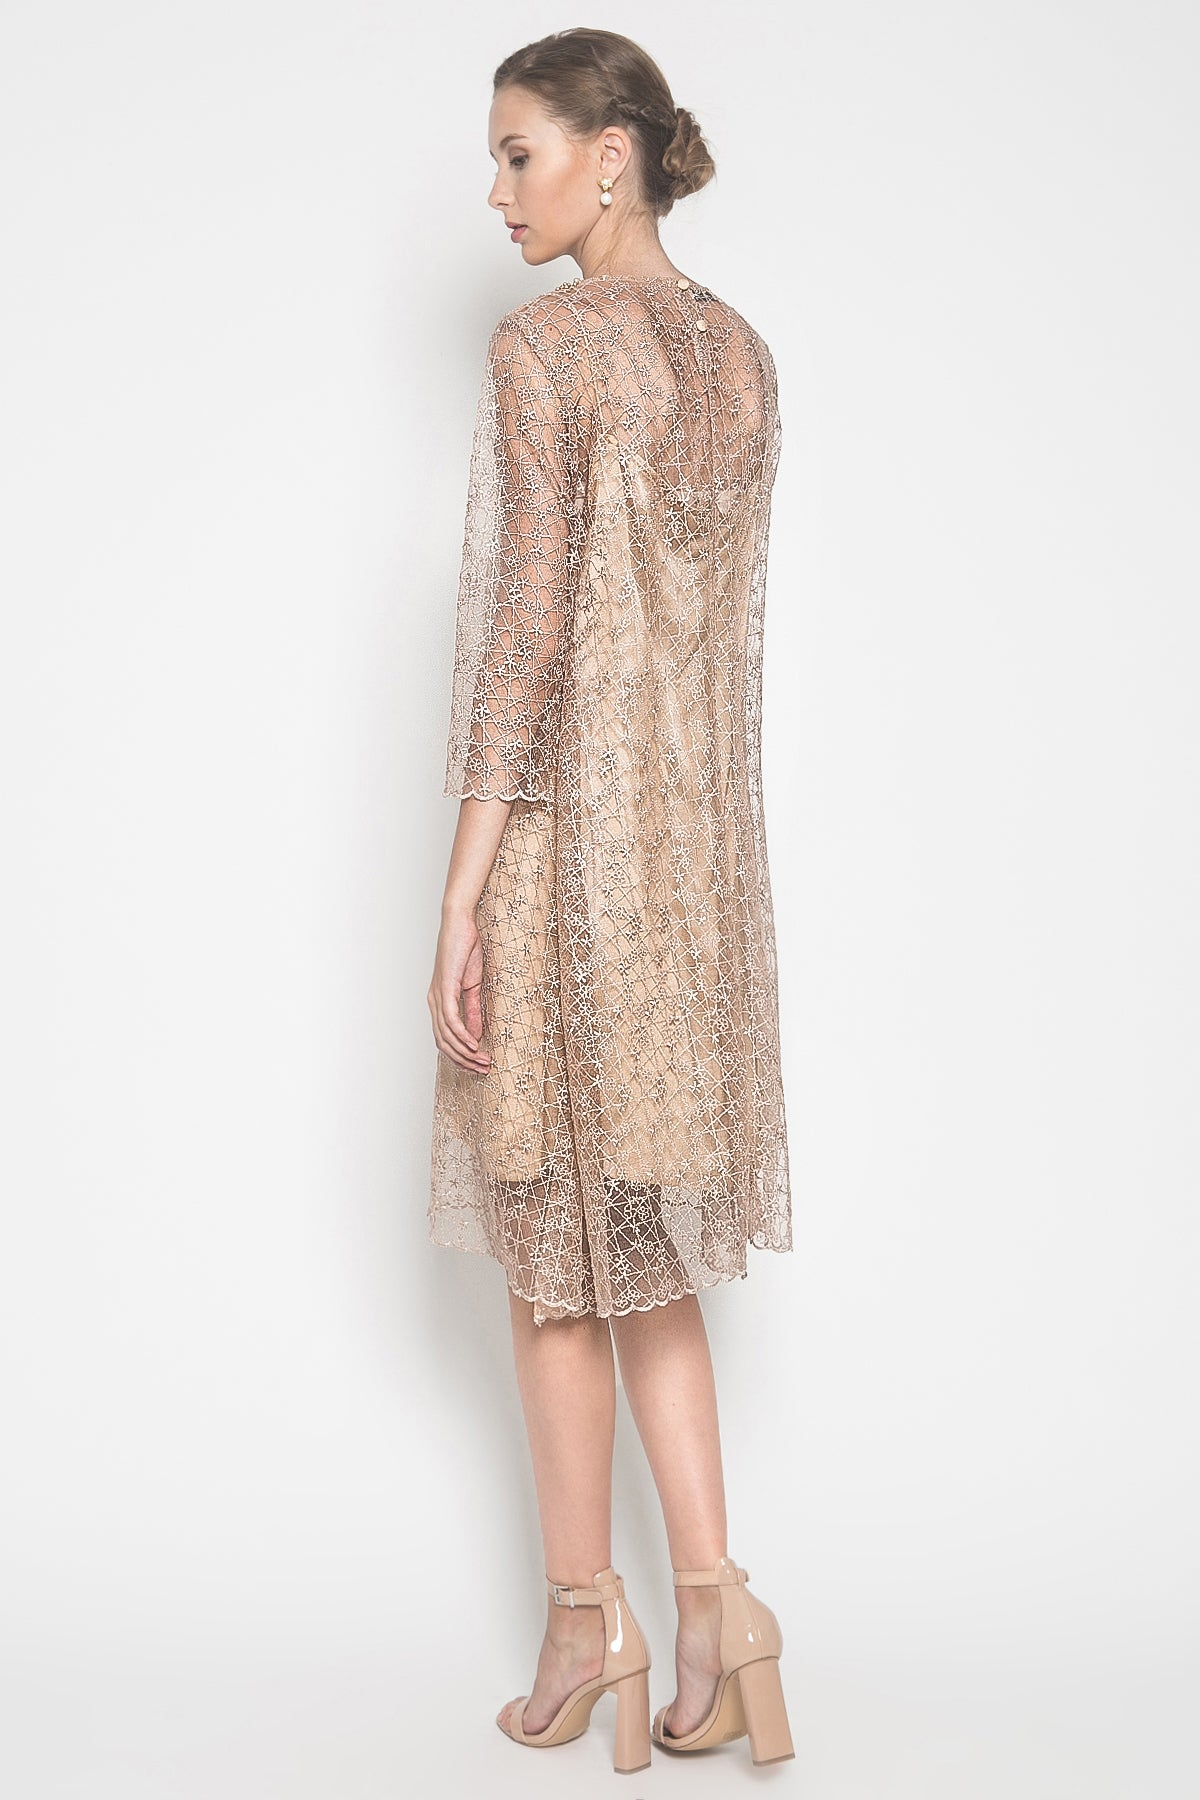 Cenora Dress in Gold